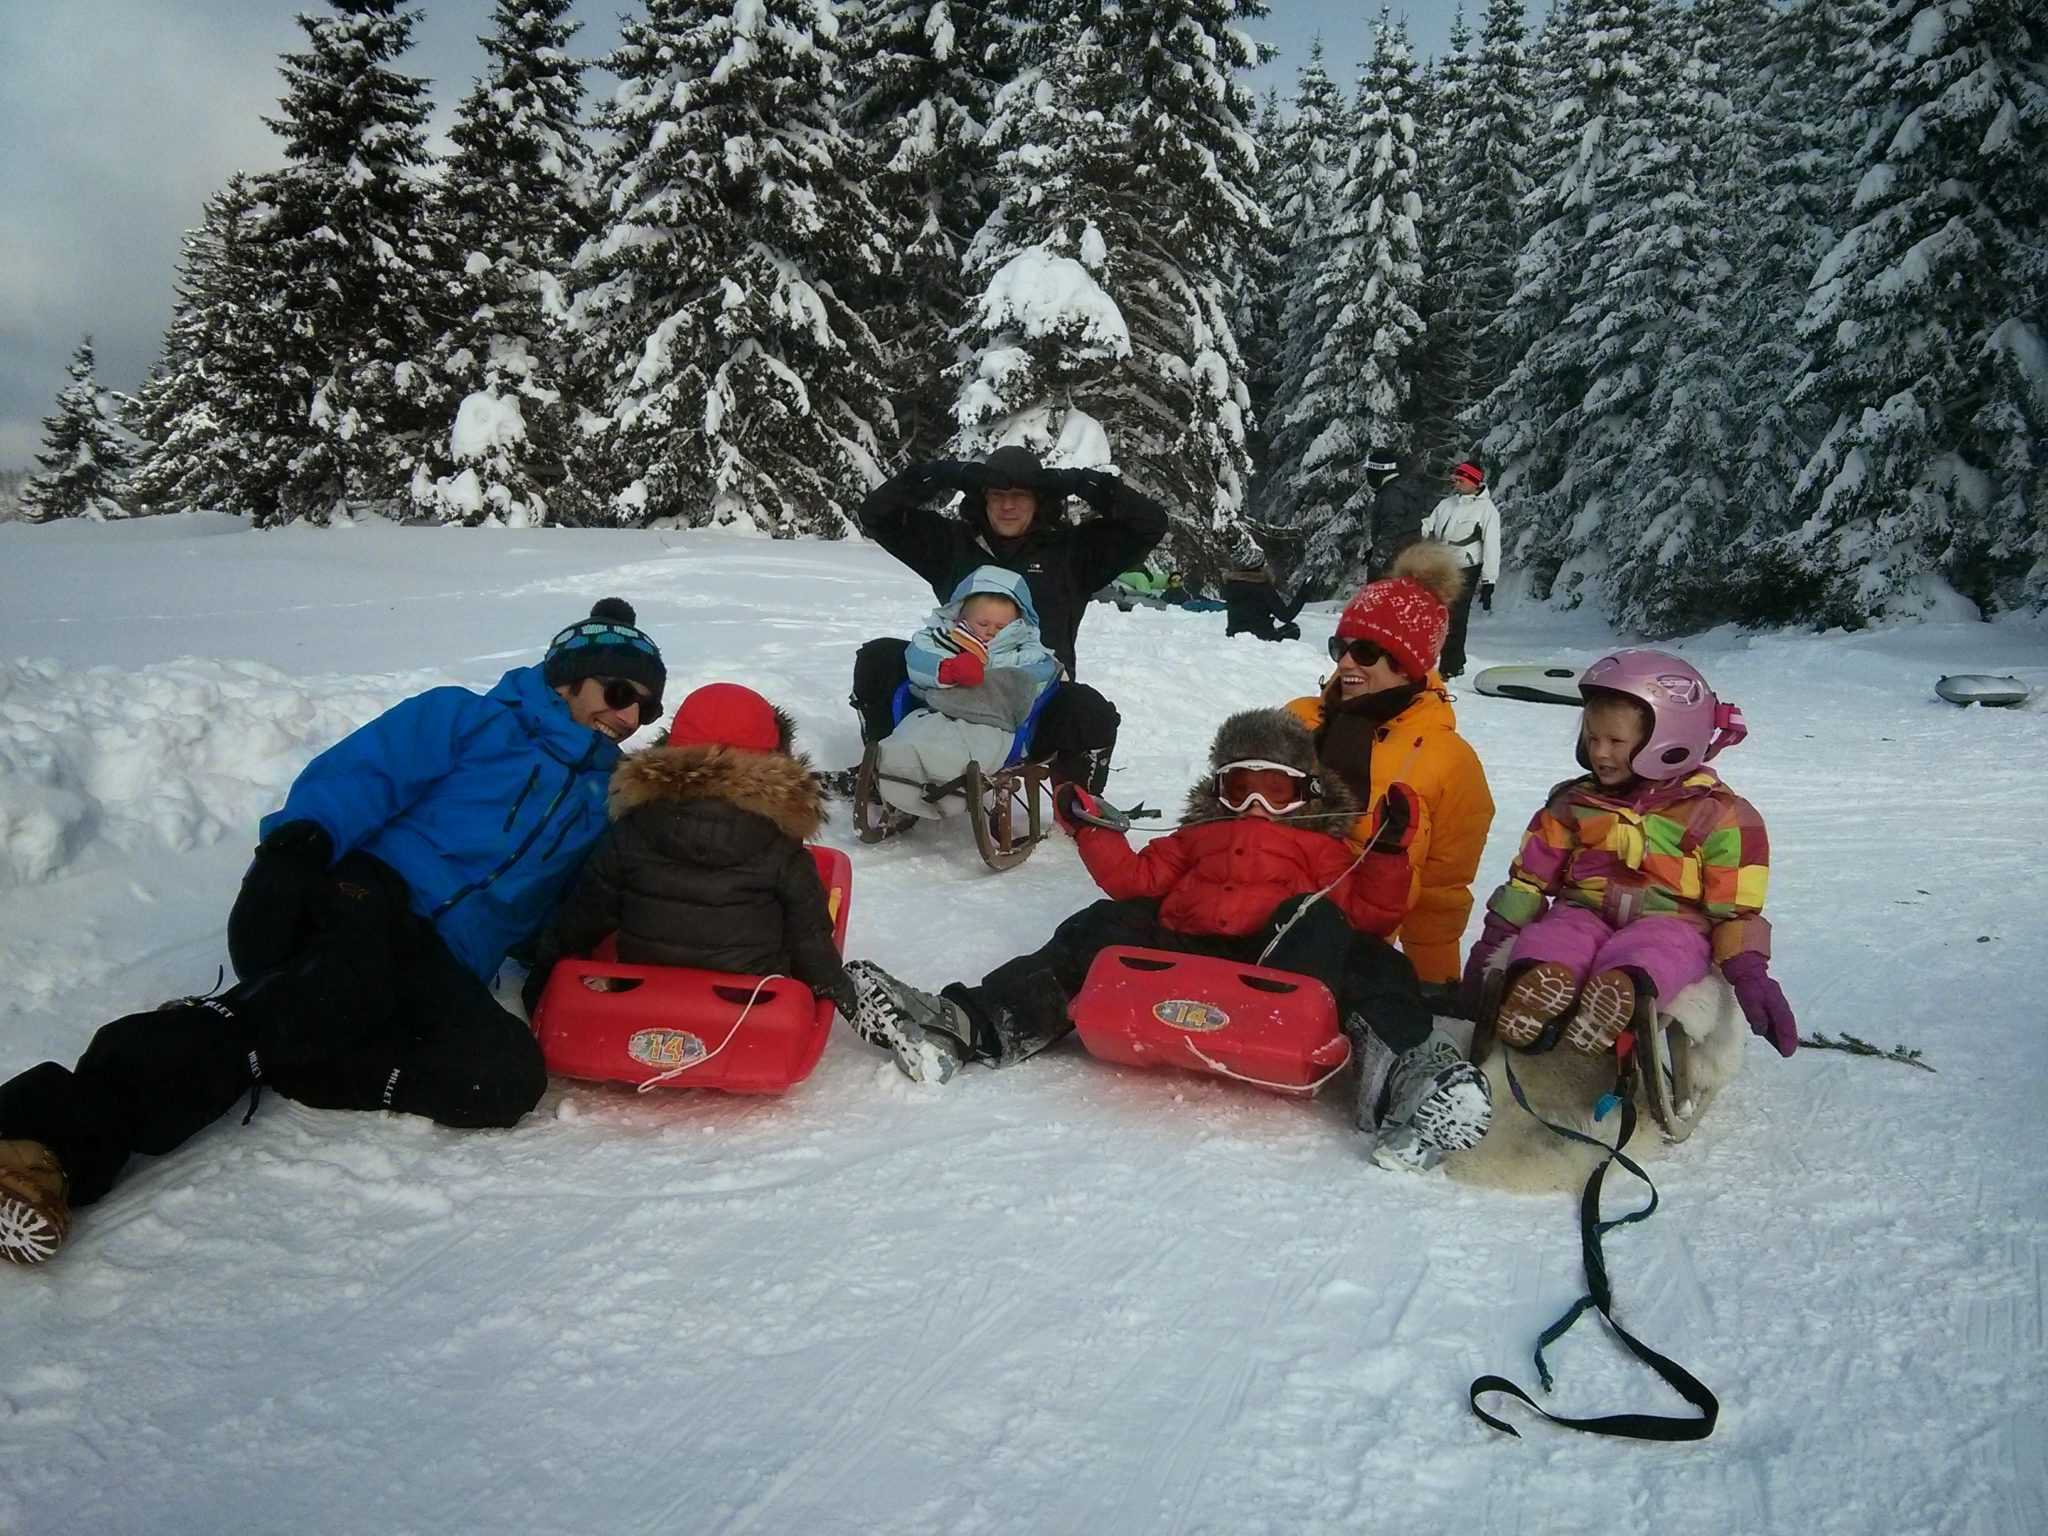 Sleds and snowplay at Col du Marchairuz